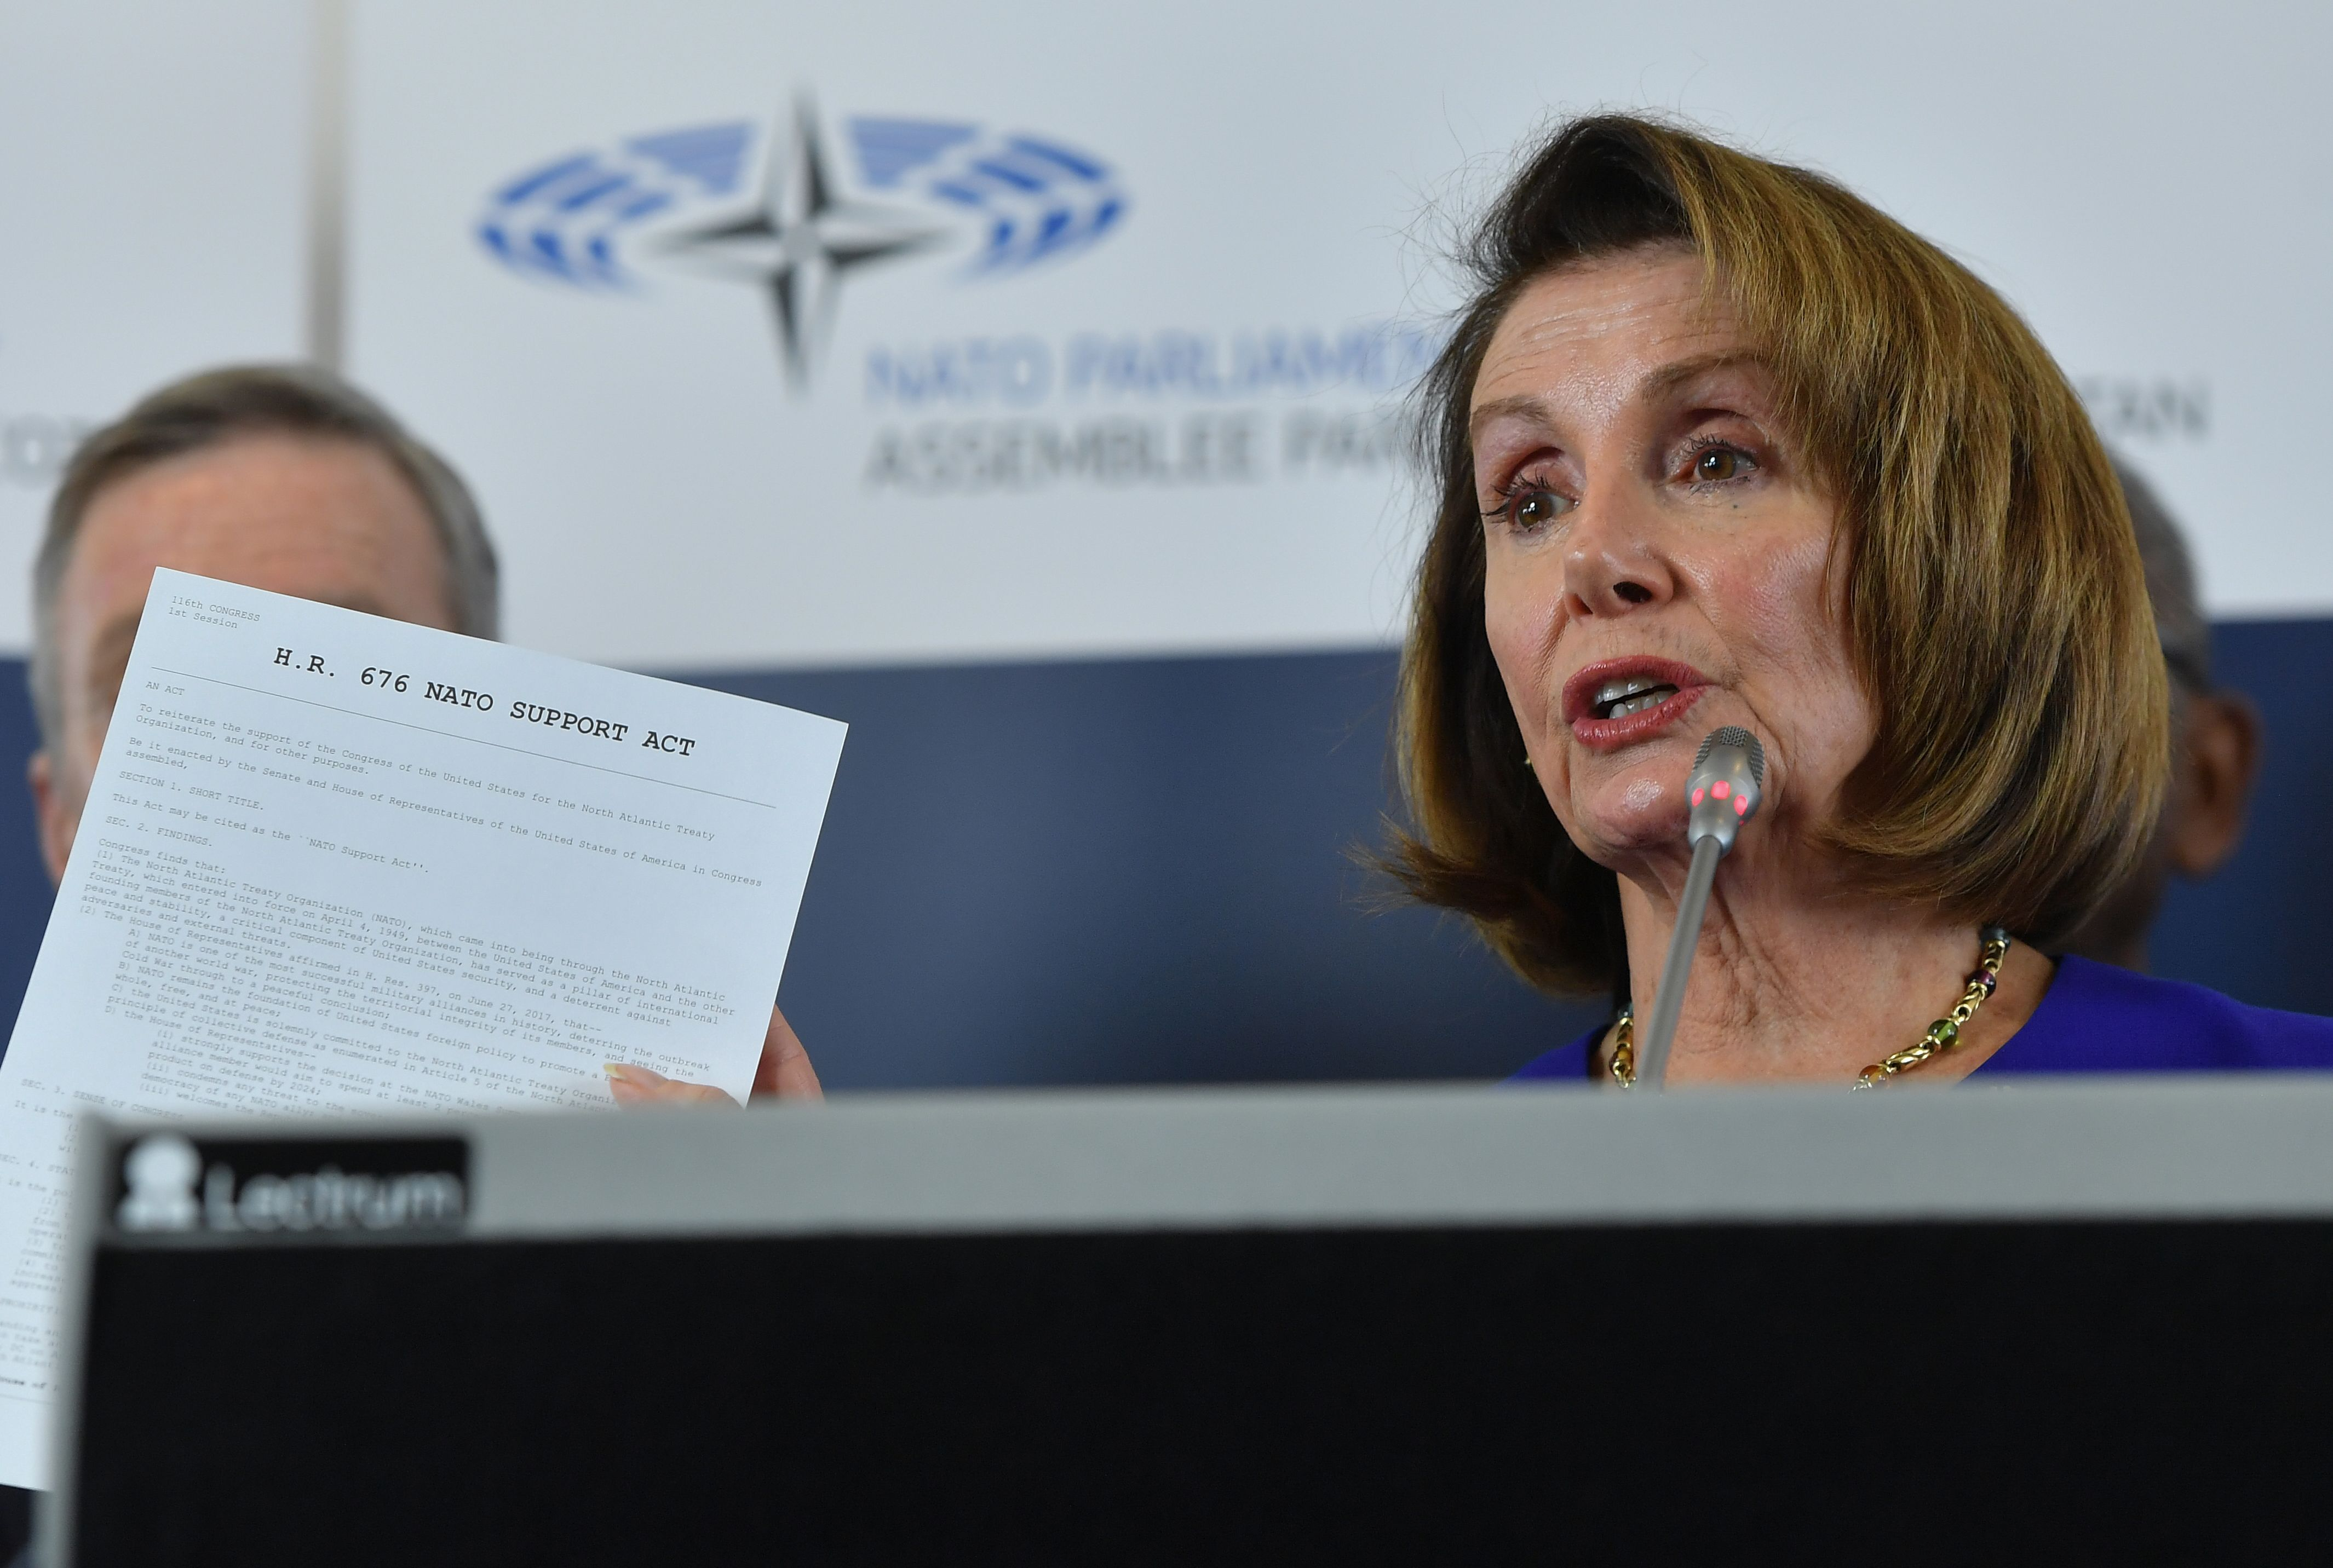 US Speaker of the House Nancy Pelosi addresses a press conference after leading a high-level US Congressional delegation in participating in a NATO parliamentary assembly in Brussels on February 19, 2019. (Photo by EMMANUEL DUNAND / AFP)